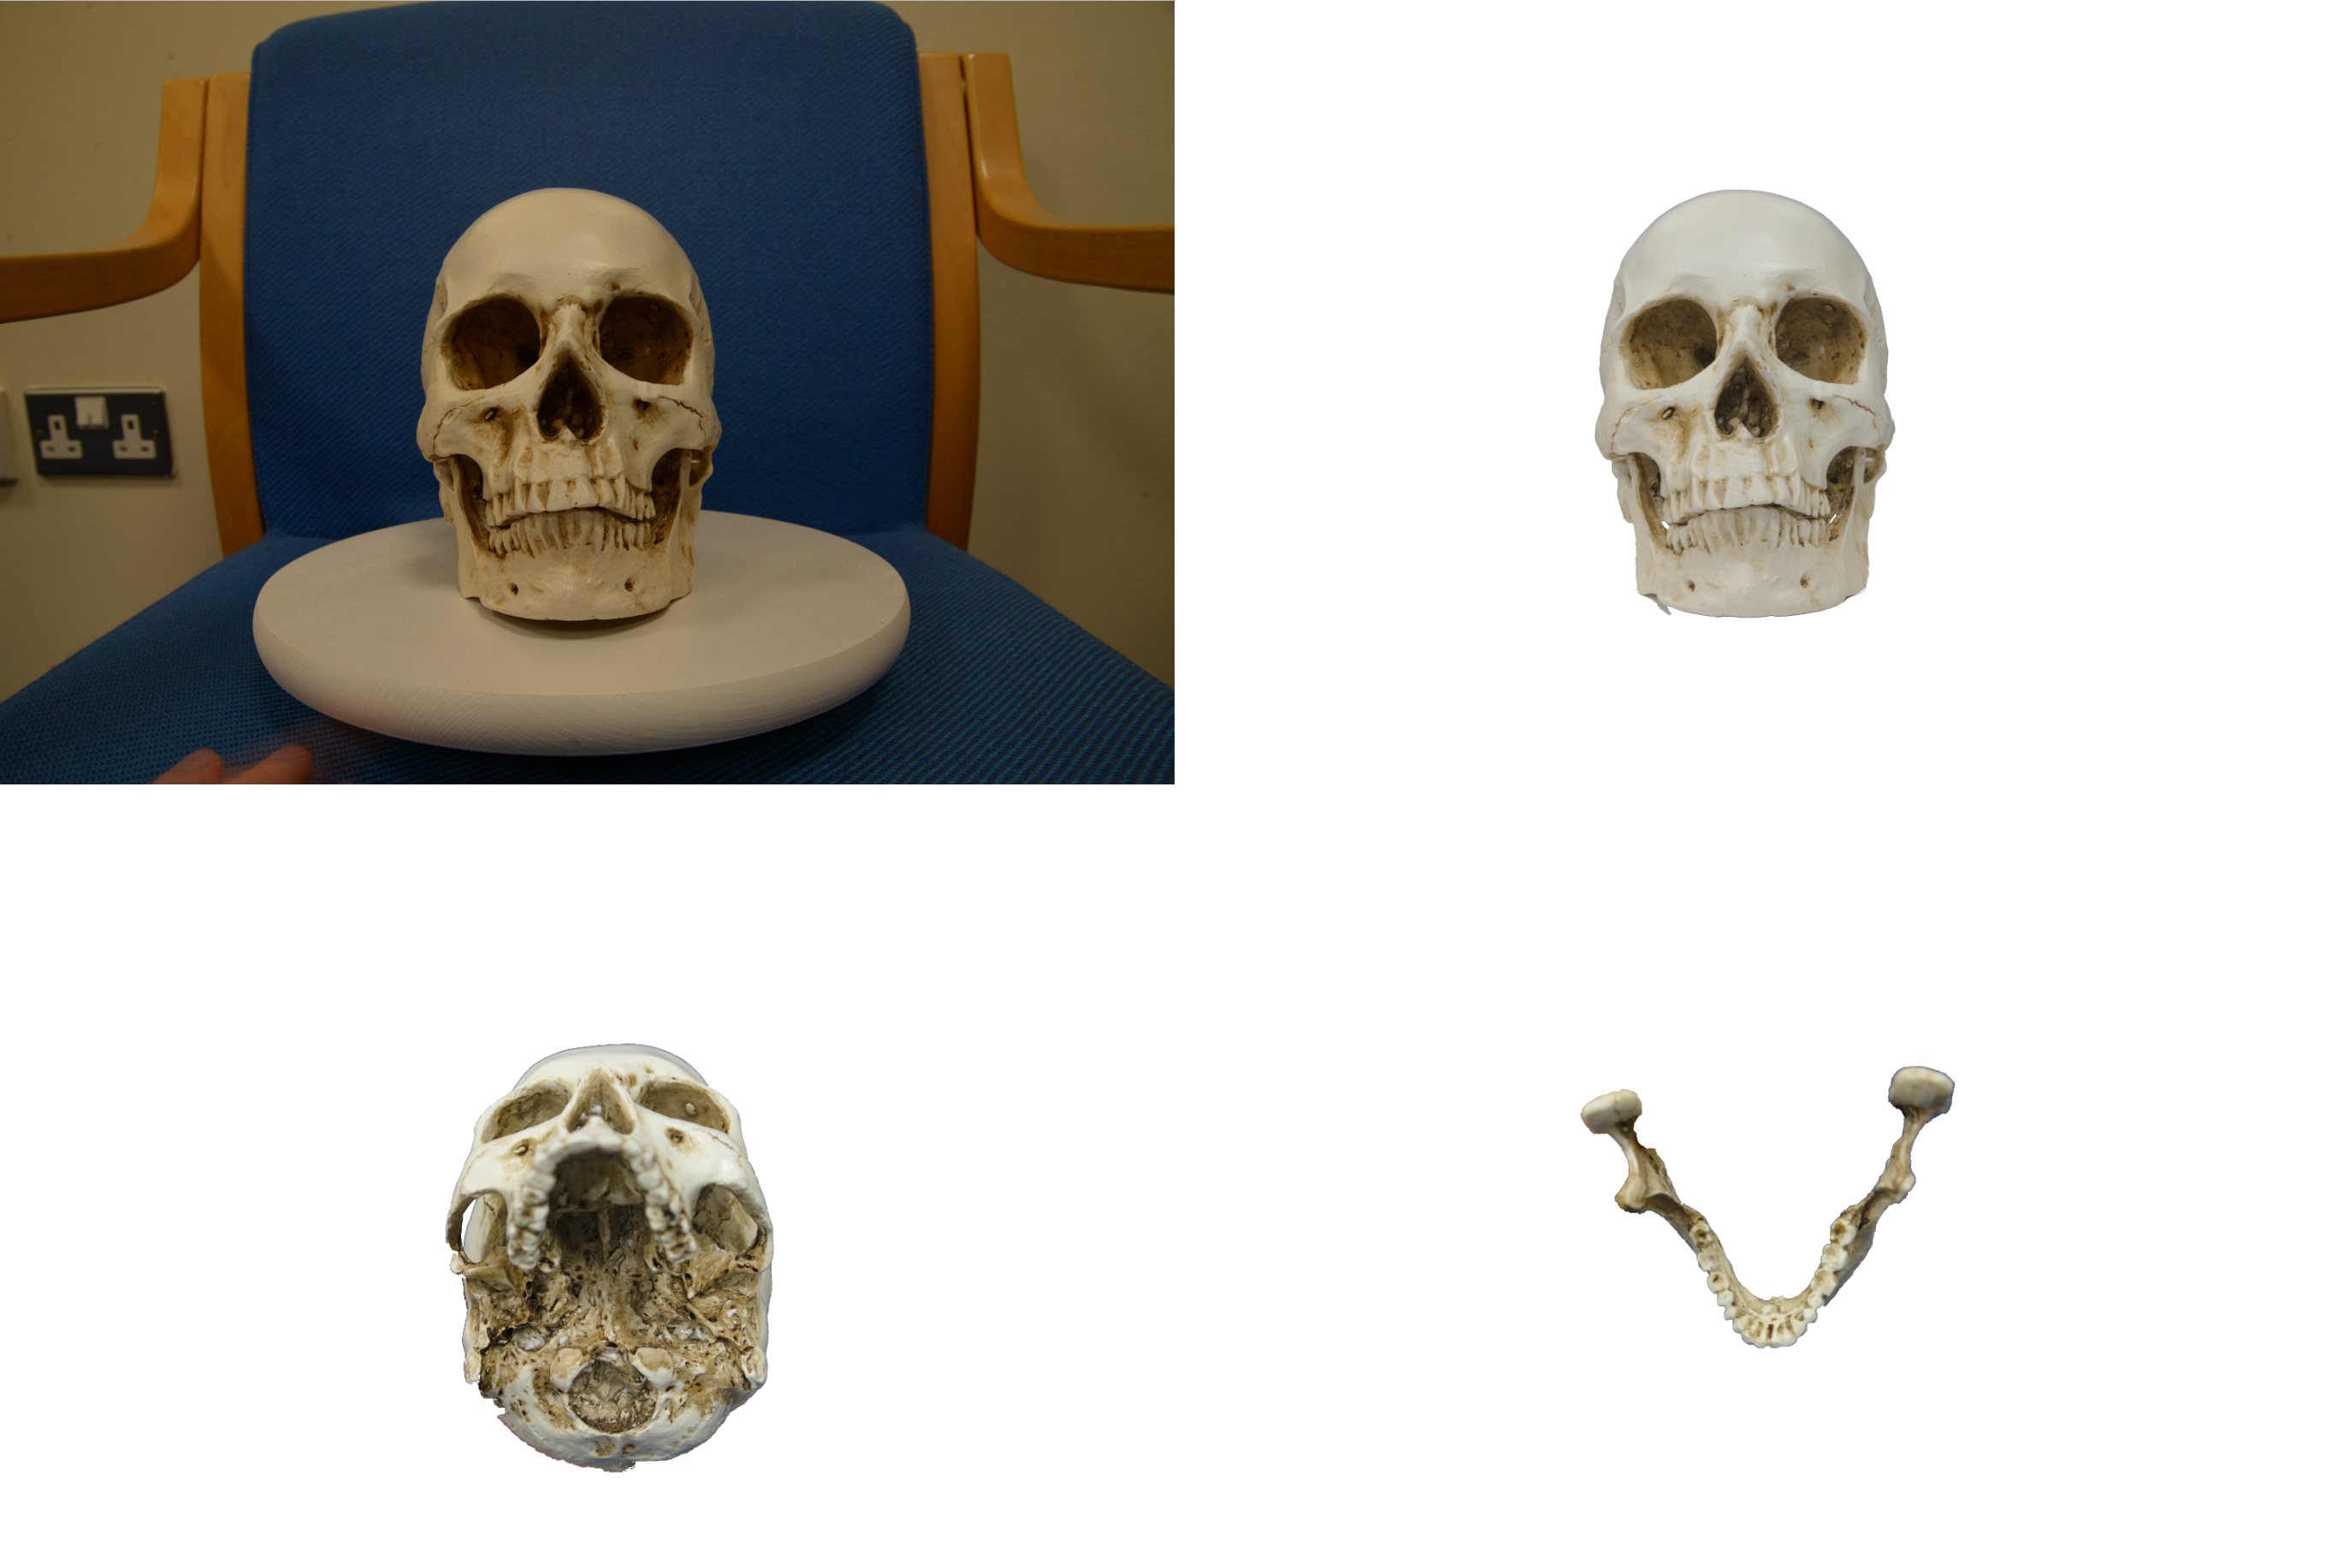 photogrammetry software masked images